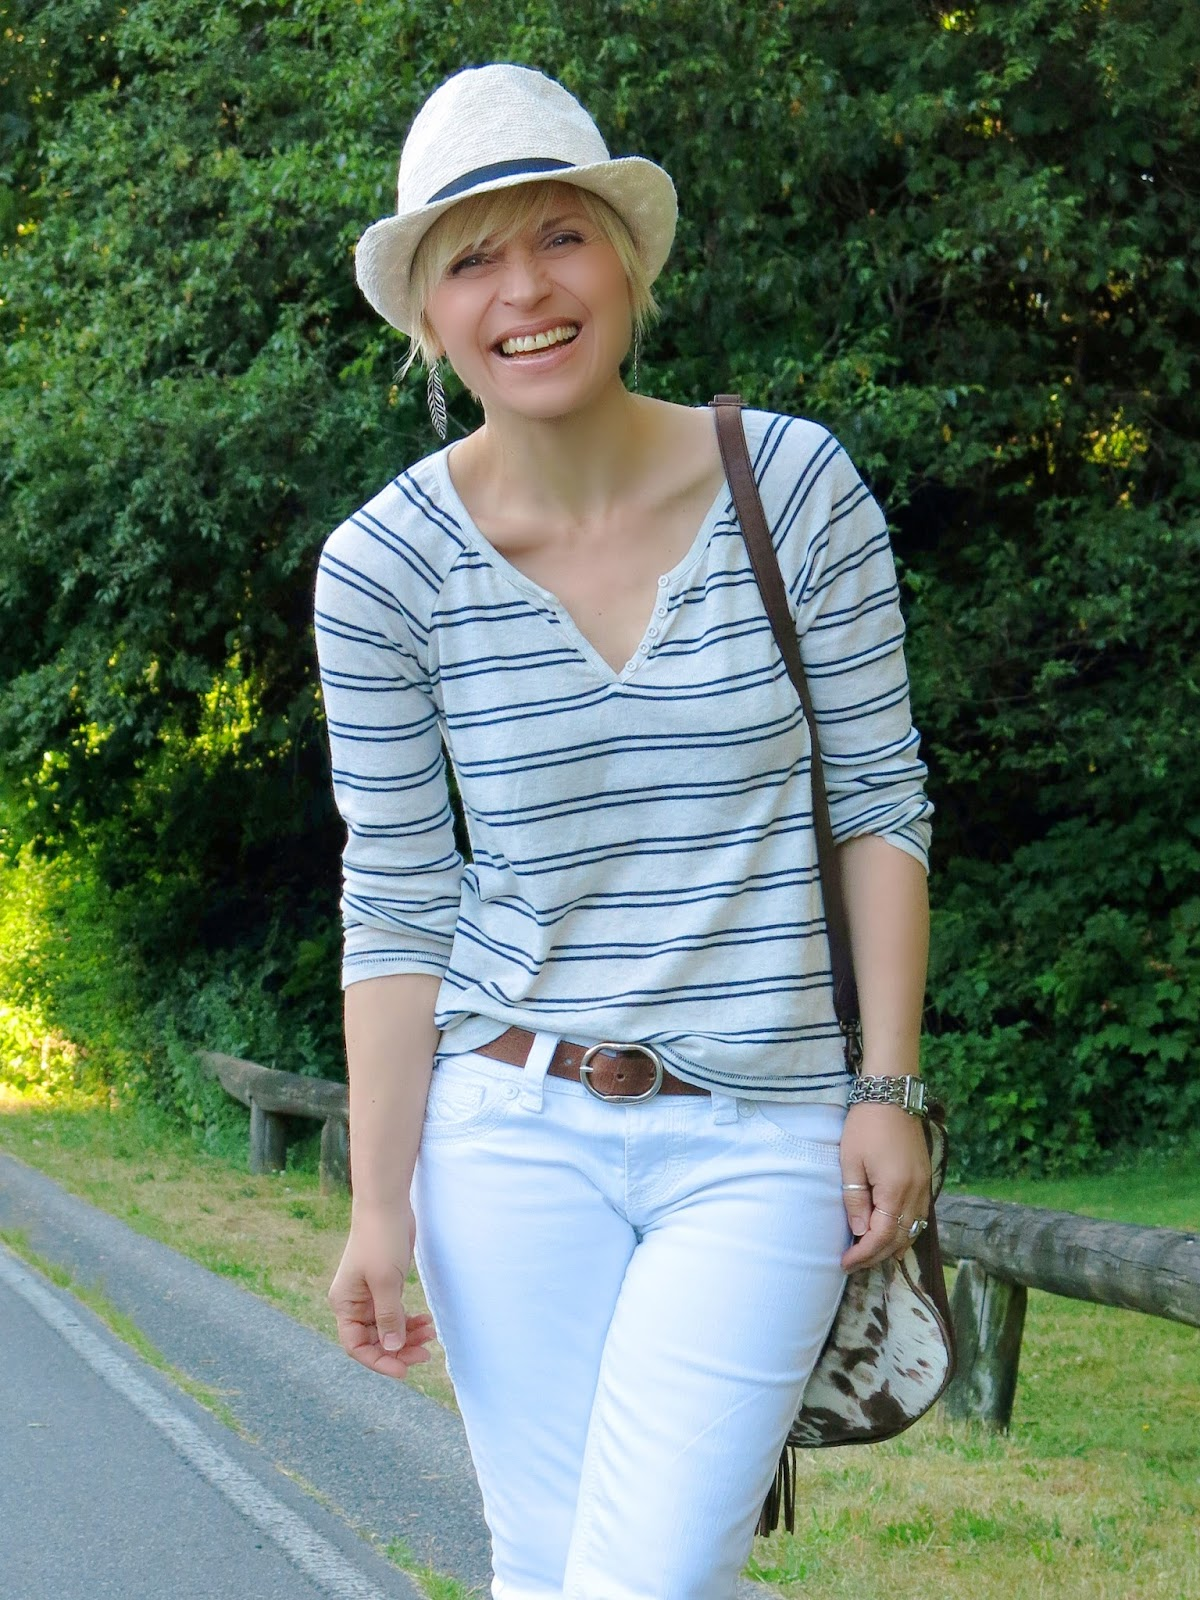 styling white jeans with a striped henley top and a fedora